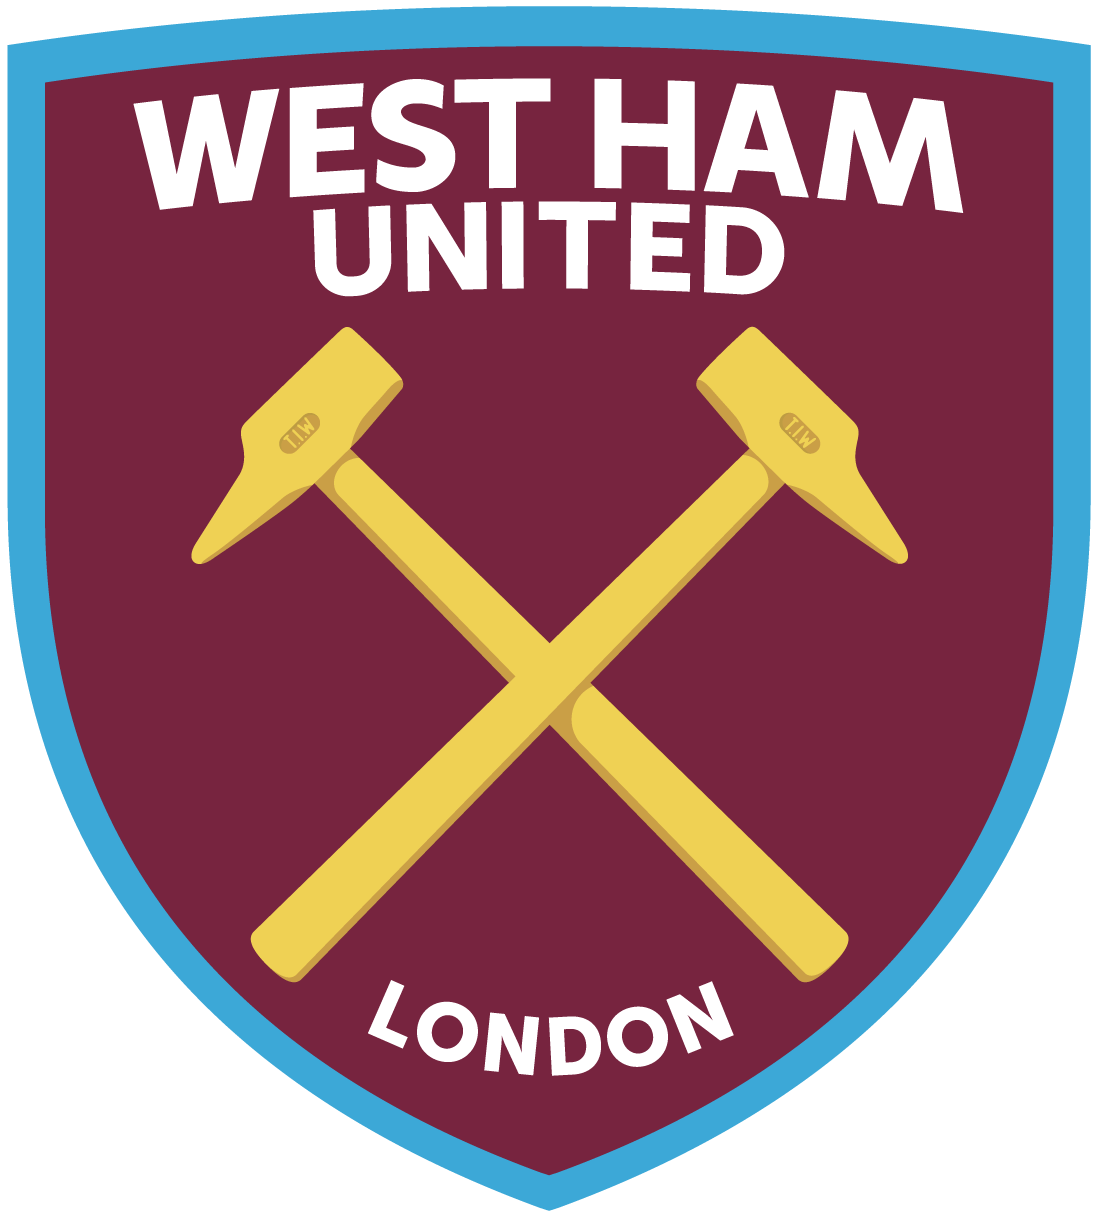 west ham united logo 3 - West Ham United FC Logo